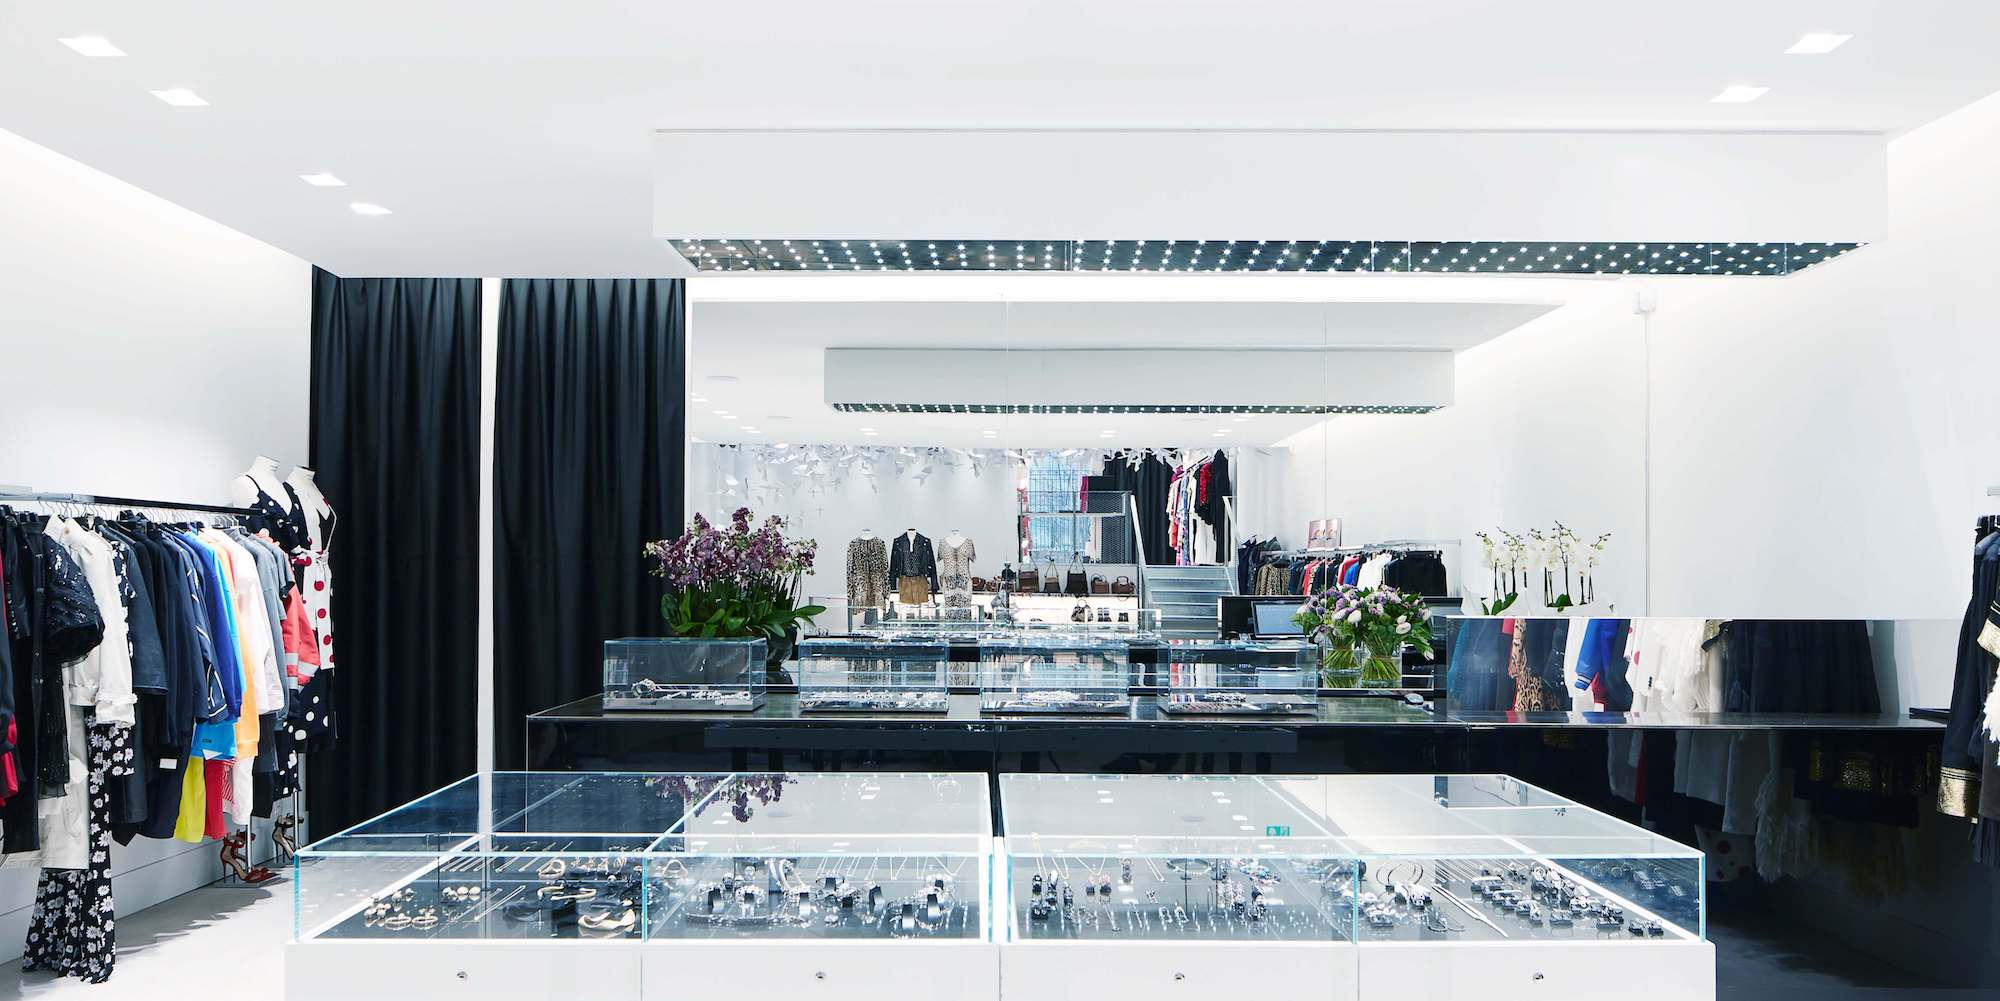 Montainge Market took over the space of popular Paris concept store Colette, and has a pointed jewelry selection, including pieces from Lynn Ban and former French ELLE editor Marie Lichtenberg.